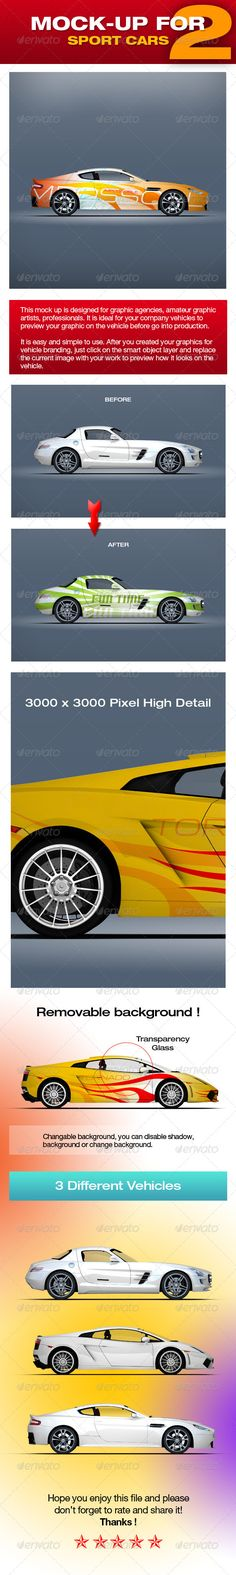 Mock-up For Sport Cars 2  #GraphicRiver         This mock up is designed for graphic agencies, amateur graphic artists, professionals. It is ideal for your company cars to preview your graphic on the vehicle before go into production.   It is easy and simple to use. After you created your graphics for vehicle branding, just click on the smart object layer and replace the current image with your work to preview how it looks on the vehicle.   Changable background, you can disable shadow…